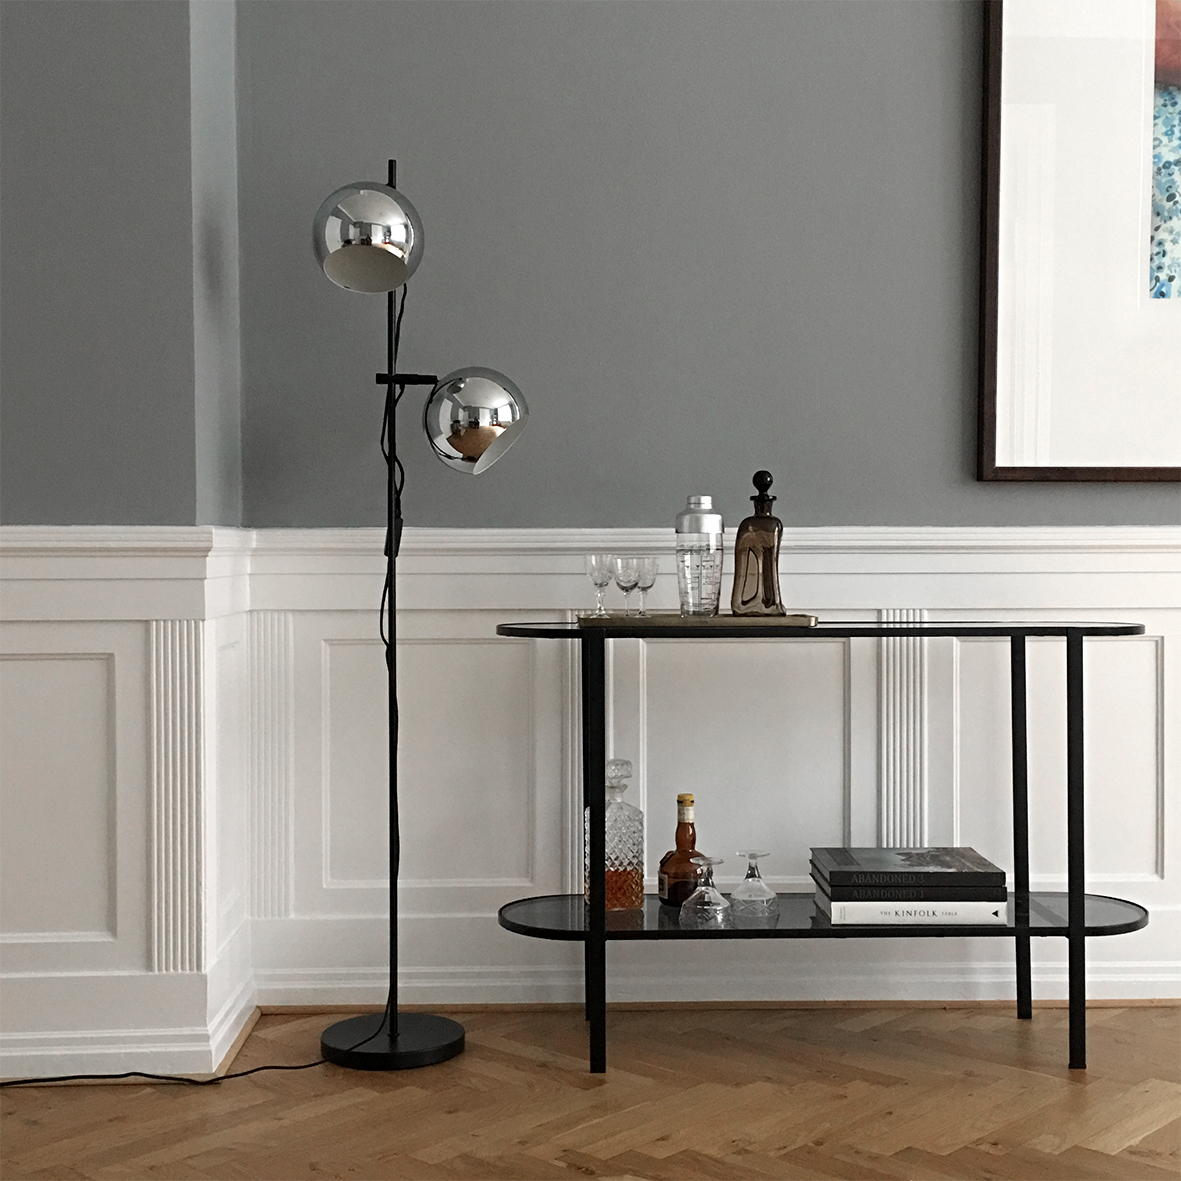 Ball Double floor lamp chrome black - lifestyle HM 63327.jpg